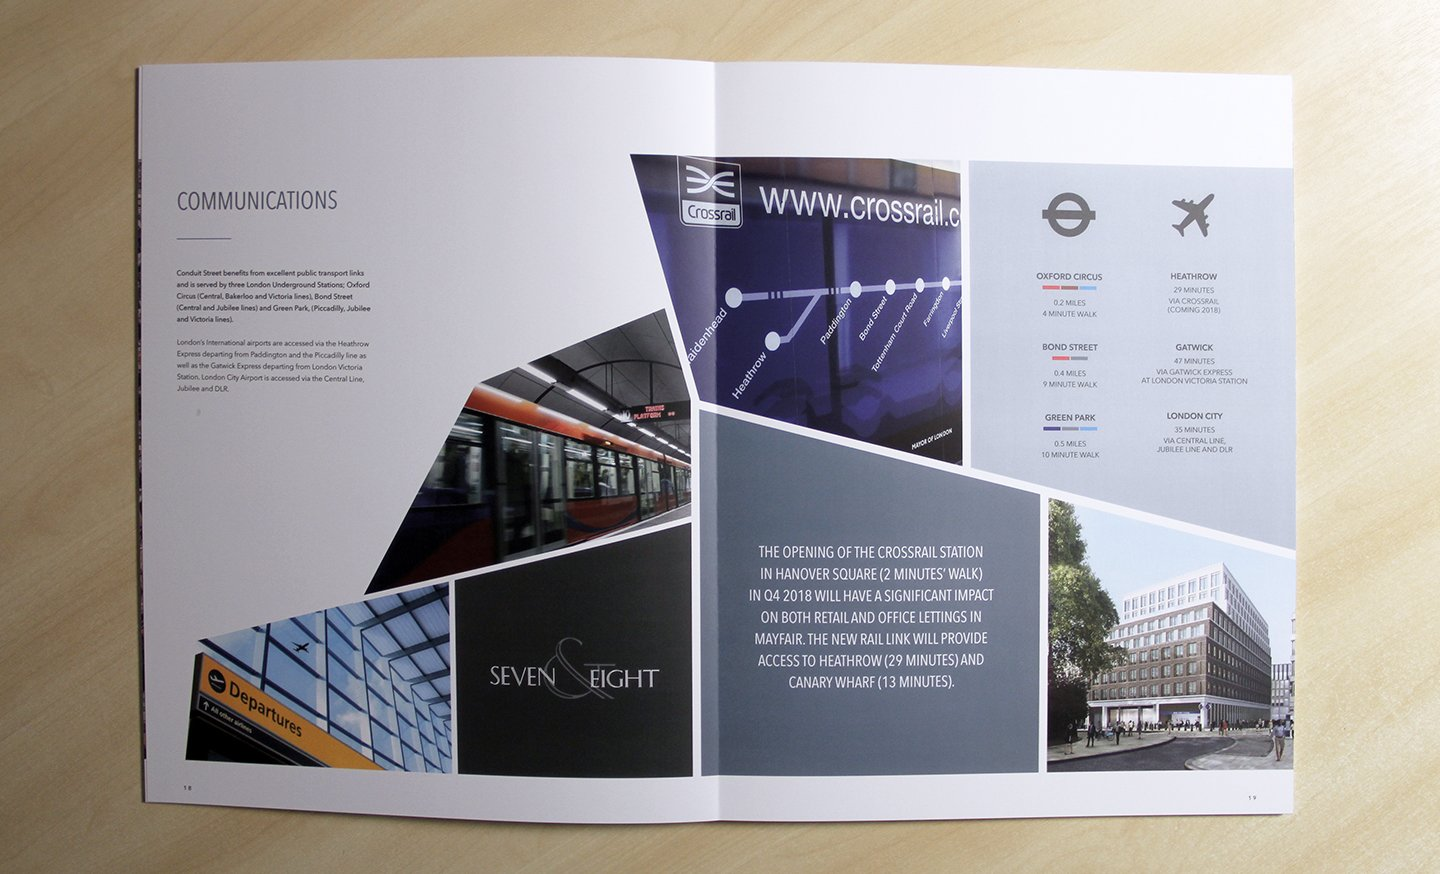 7 & 8 Conduit Street Brochure Open